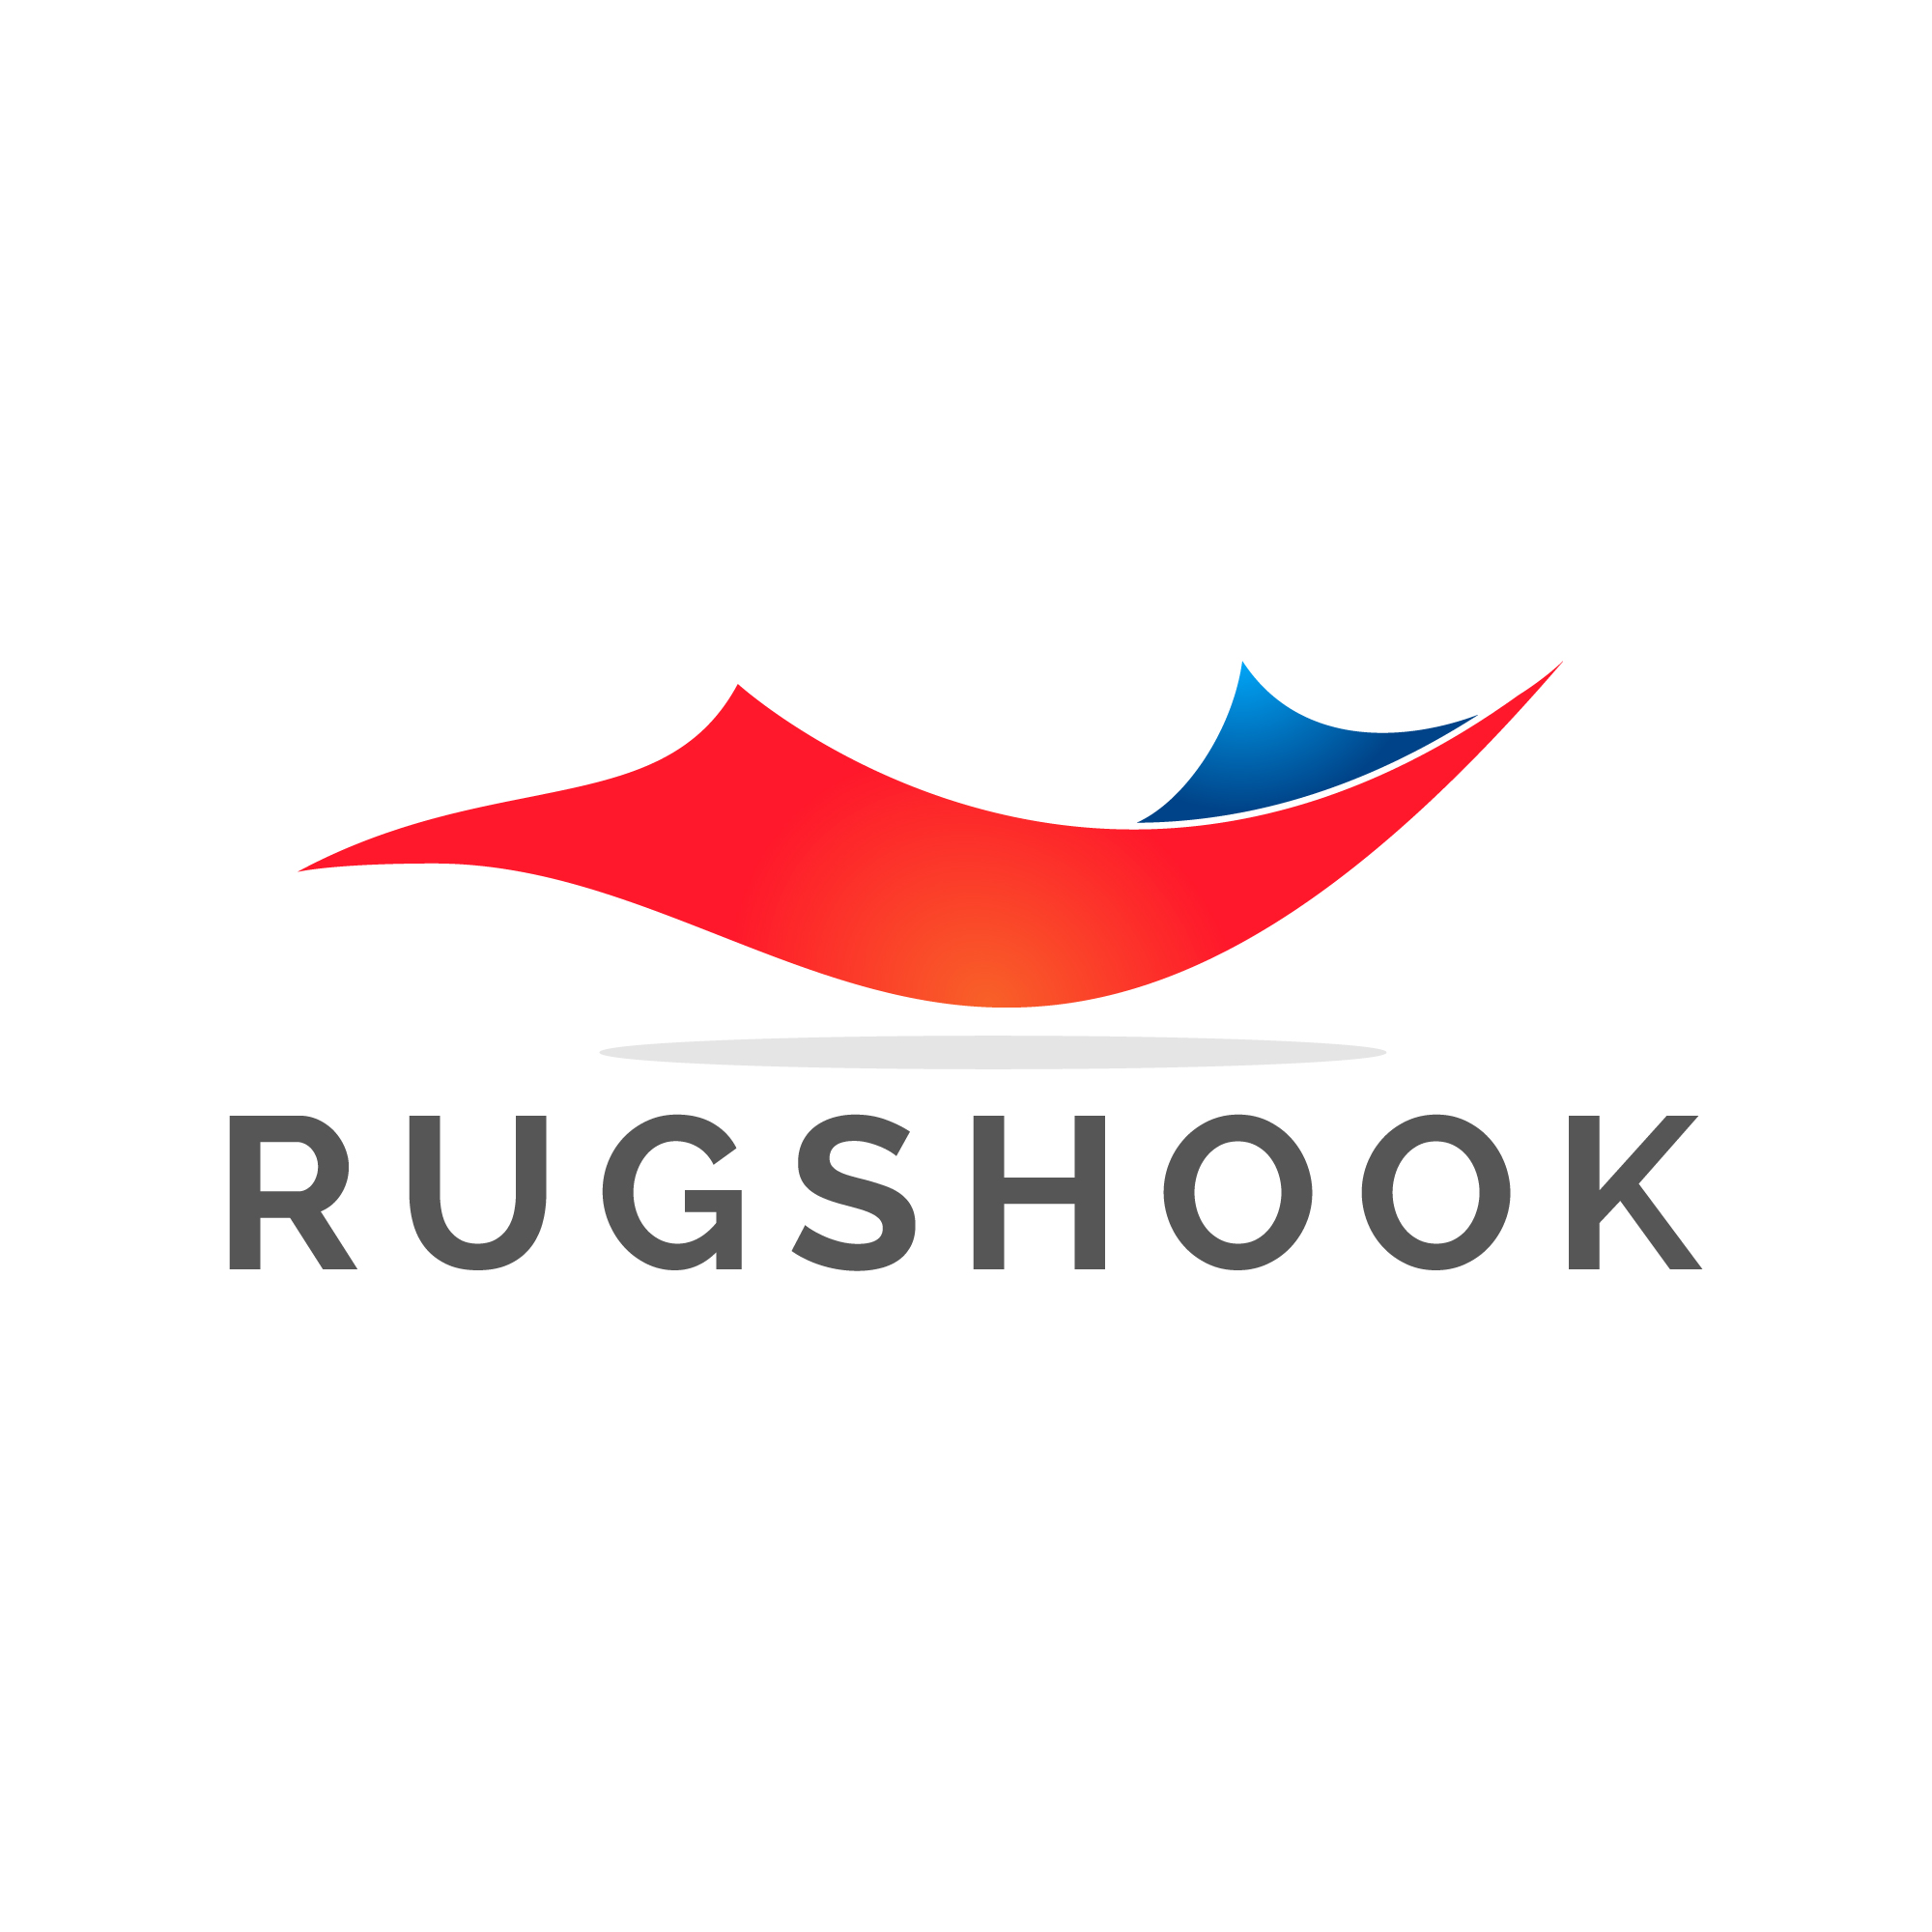 Rugshook is a Top Oriental Rug Store in North Bergen